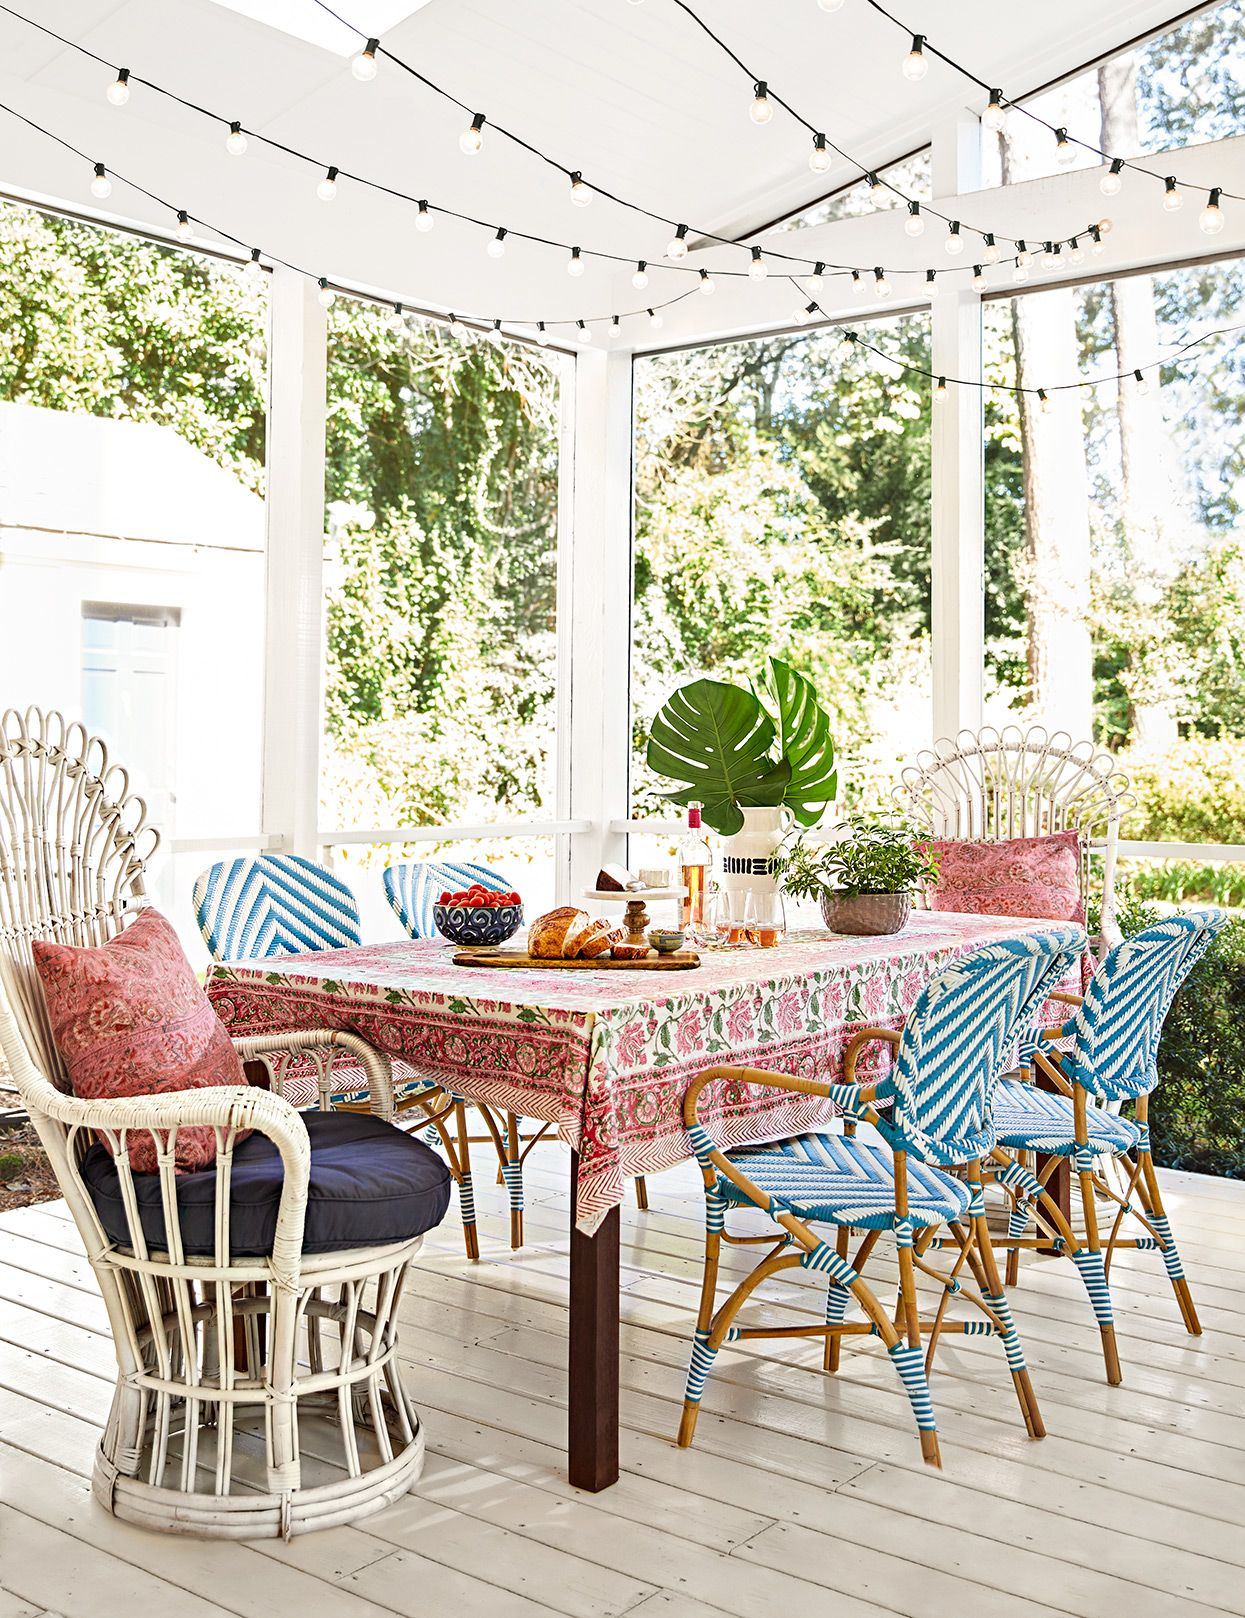 5 Backyard Trends That Will Be Everywhere This Summer Perfect Patio Patio Decor